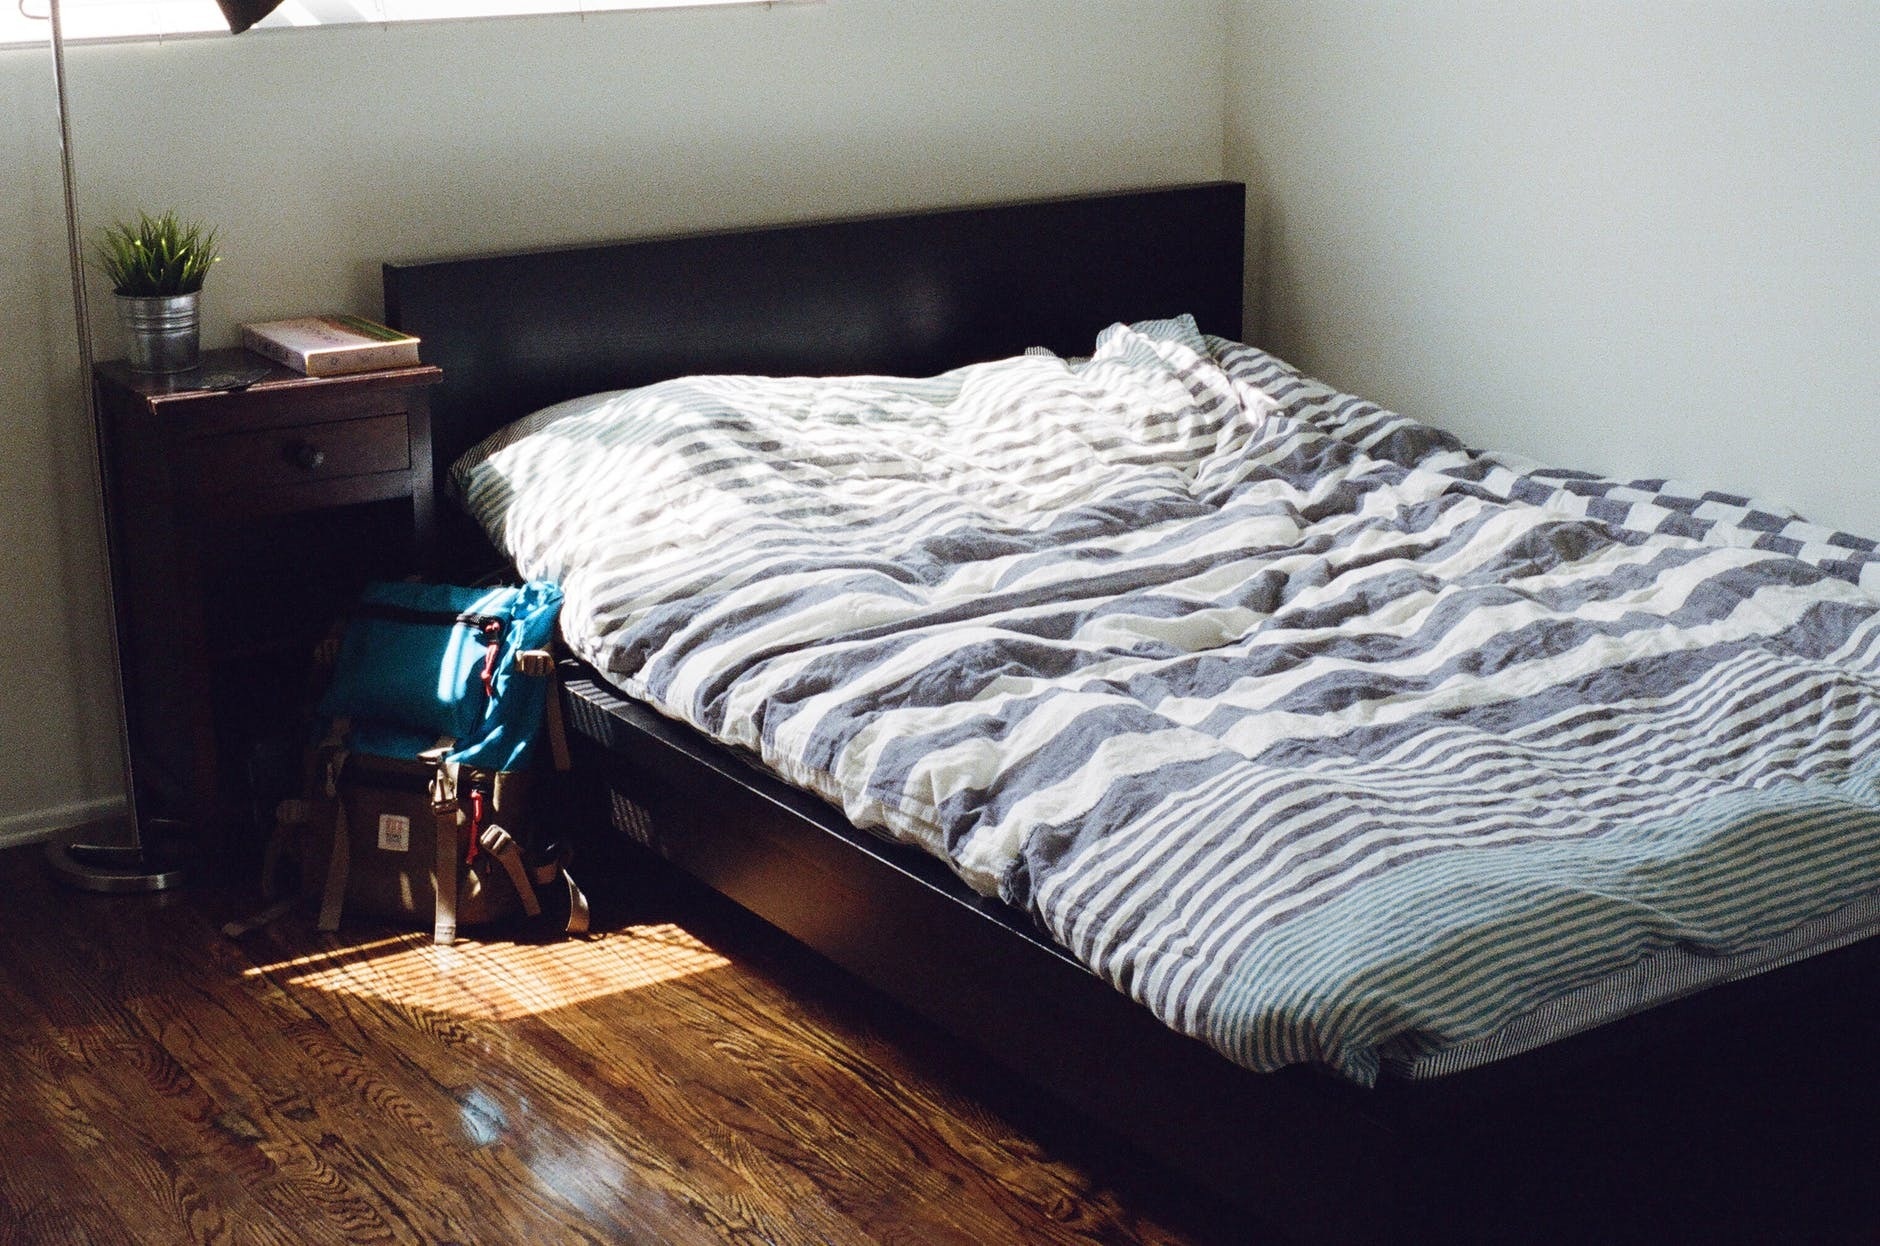 How To Keep A Mattress From Sliding Around